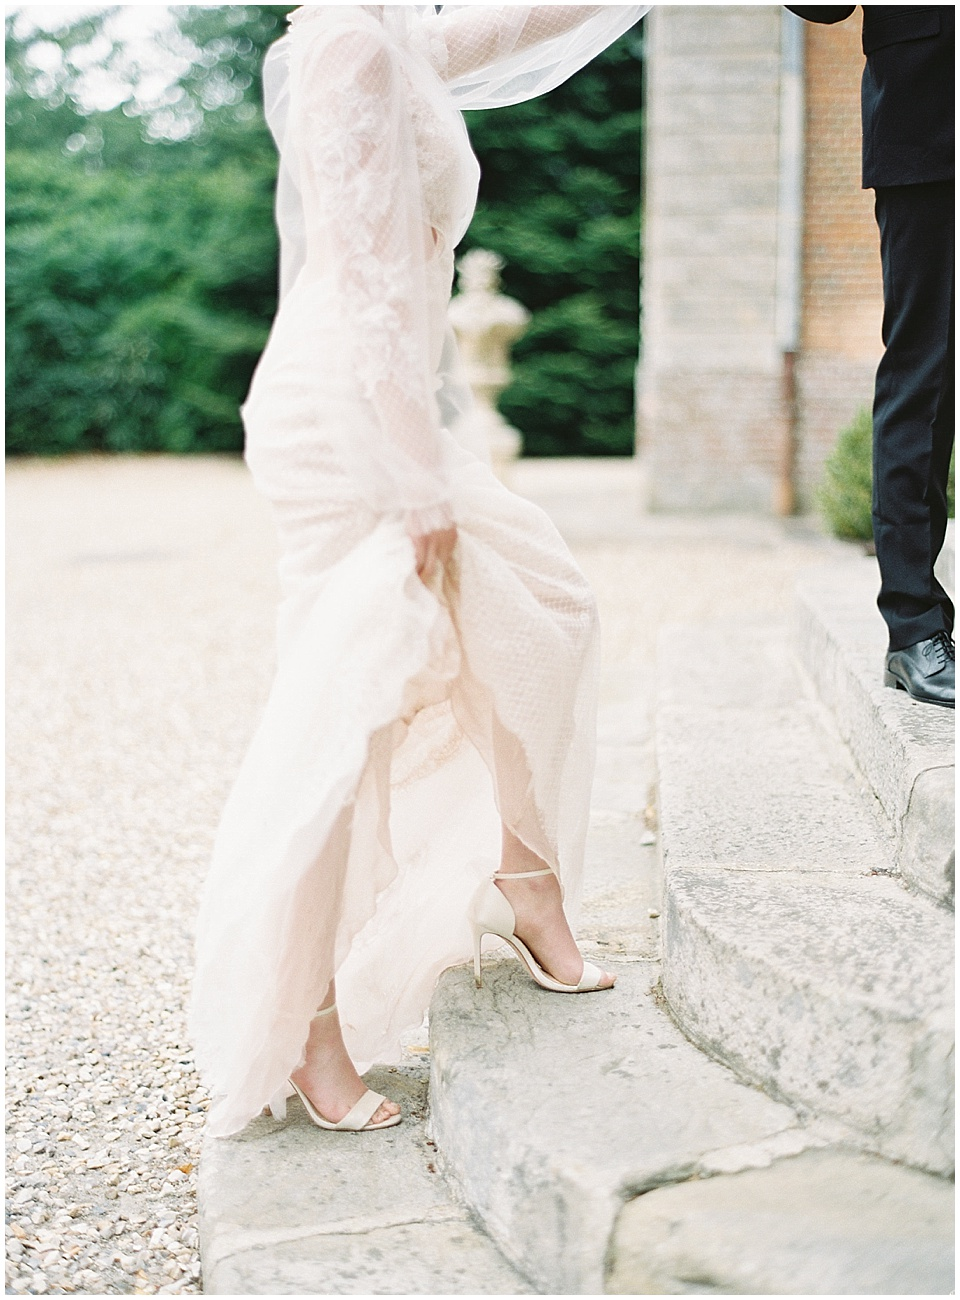 French chateau | Bride and groom portraits | Joy Proctor Design | French Wedding Inspiration | France Wedding | Destination Film Photographer | Paris Wedding | Fine Art Film Photographer |  Chateau De Carsix | Whiskers and Willow Photography.jpg